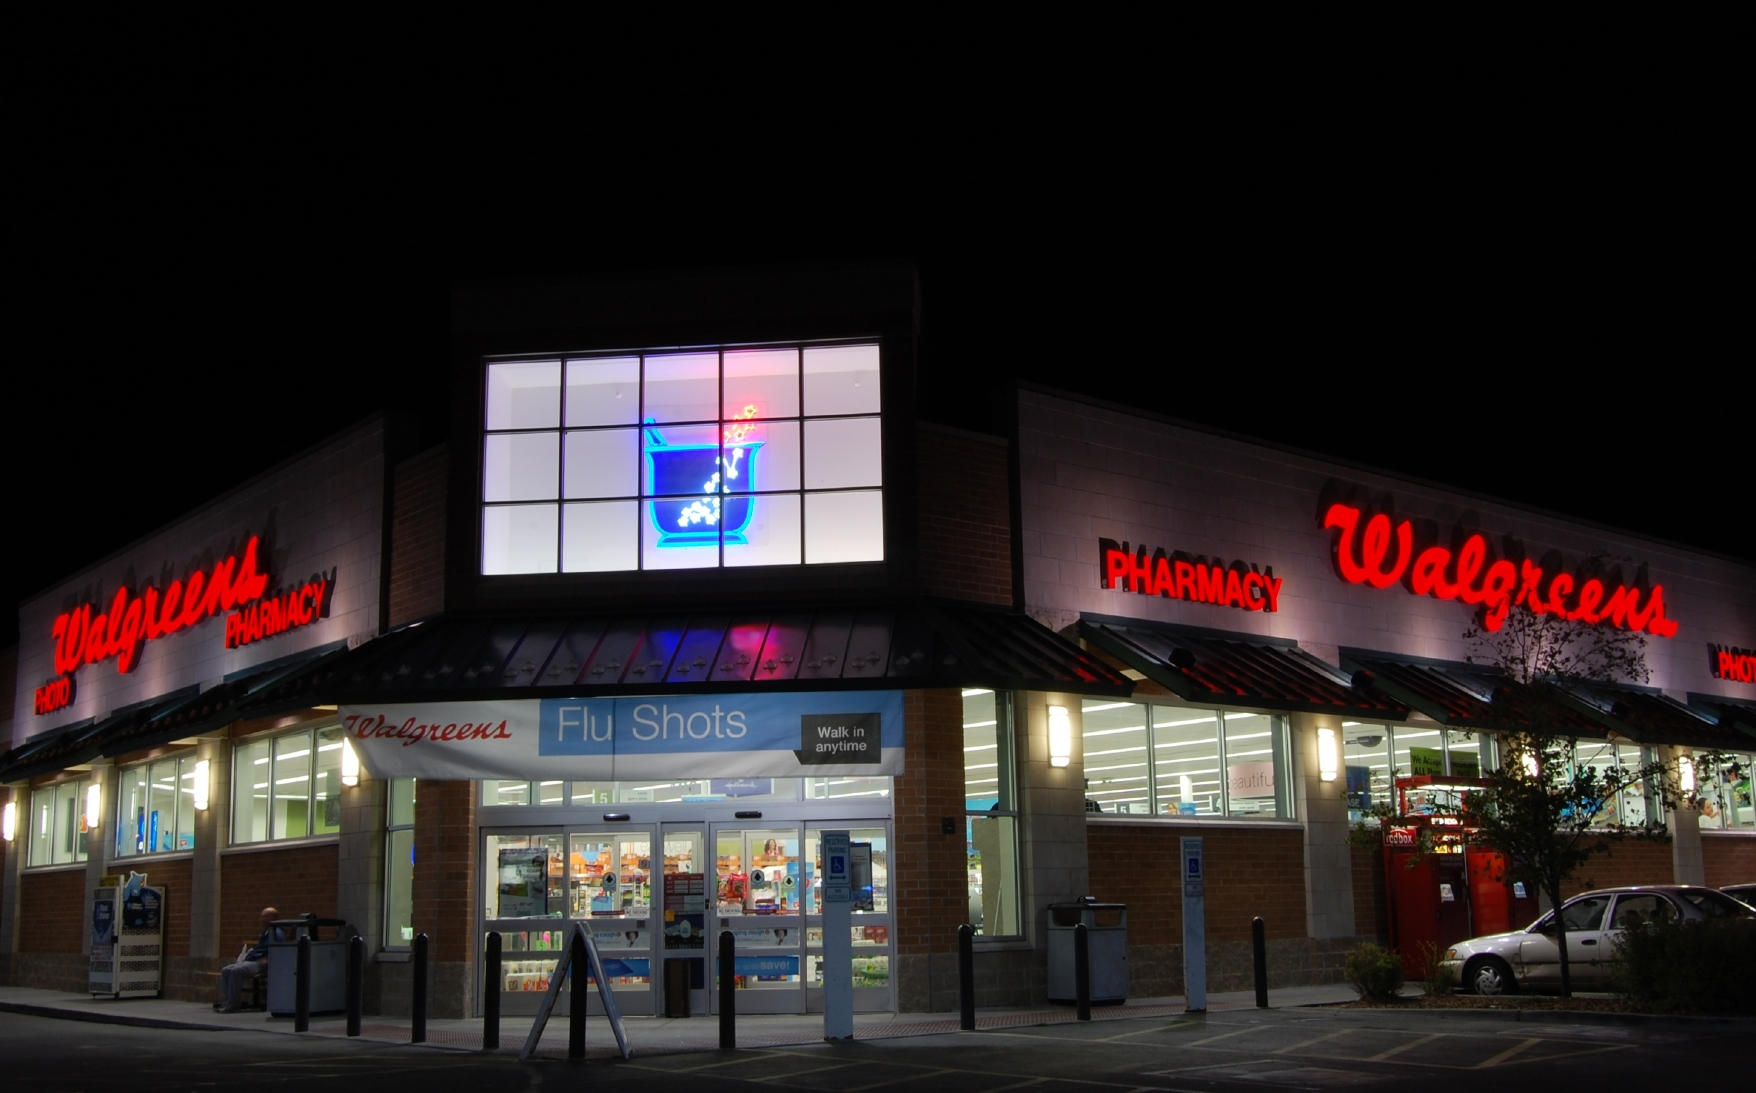 Most Walgreens coupon codes are for discounts on specific services, like Walgreens photo lab. During the holidays, including Black Friday and Cyber Monday, Walgreens will feature discounts for holiday decor, gifts, toys, Christmas card and a whole array of personalized photo gifts%().